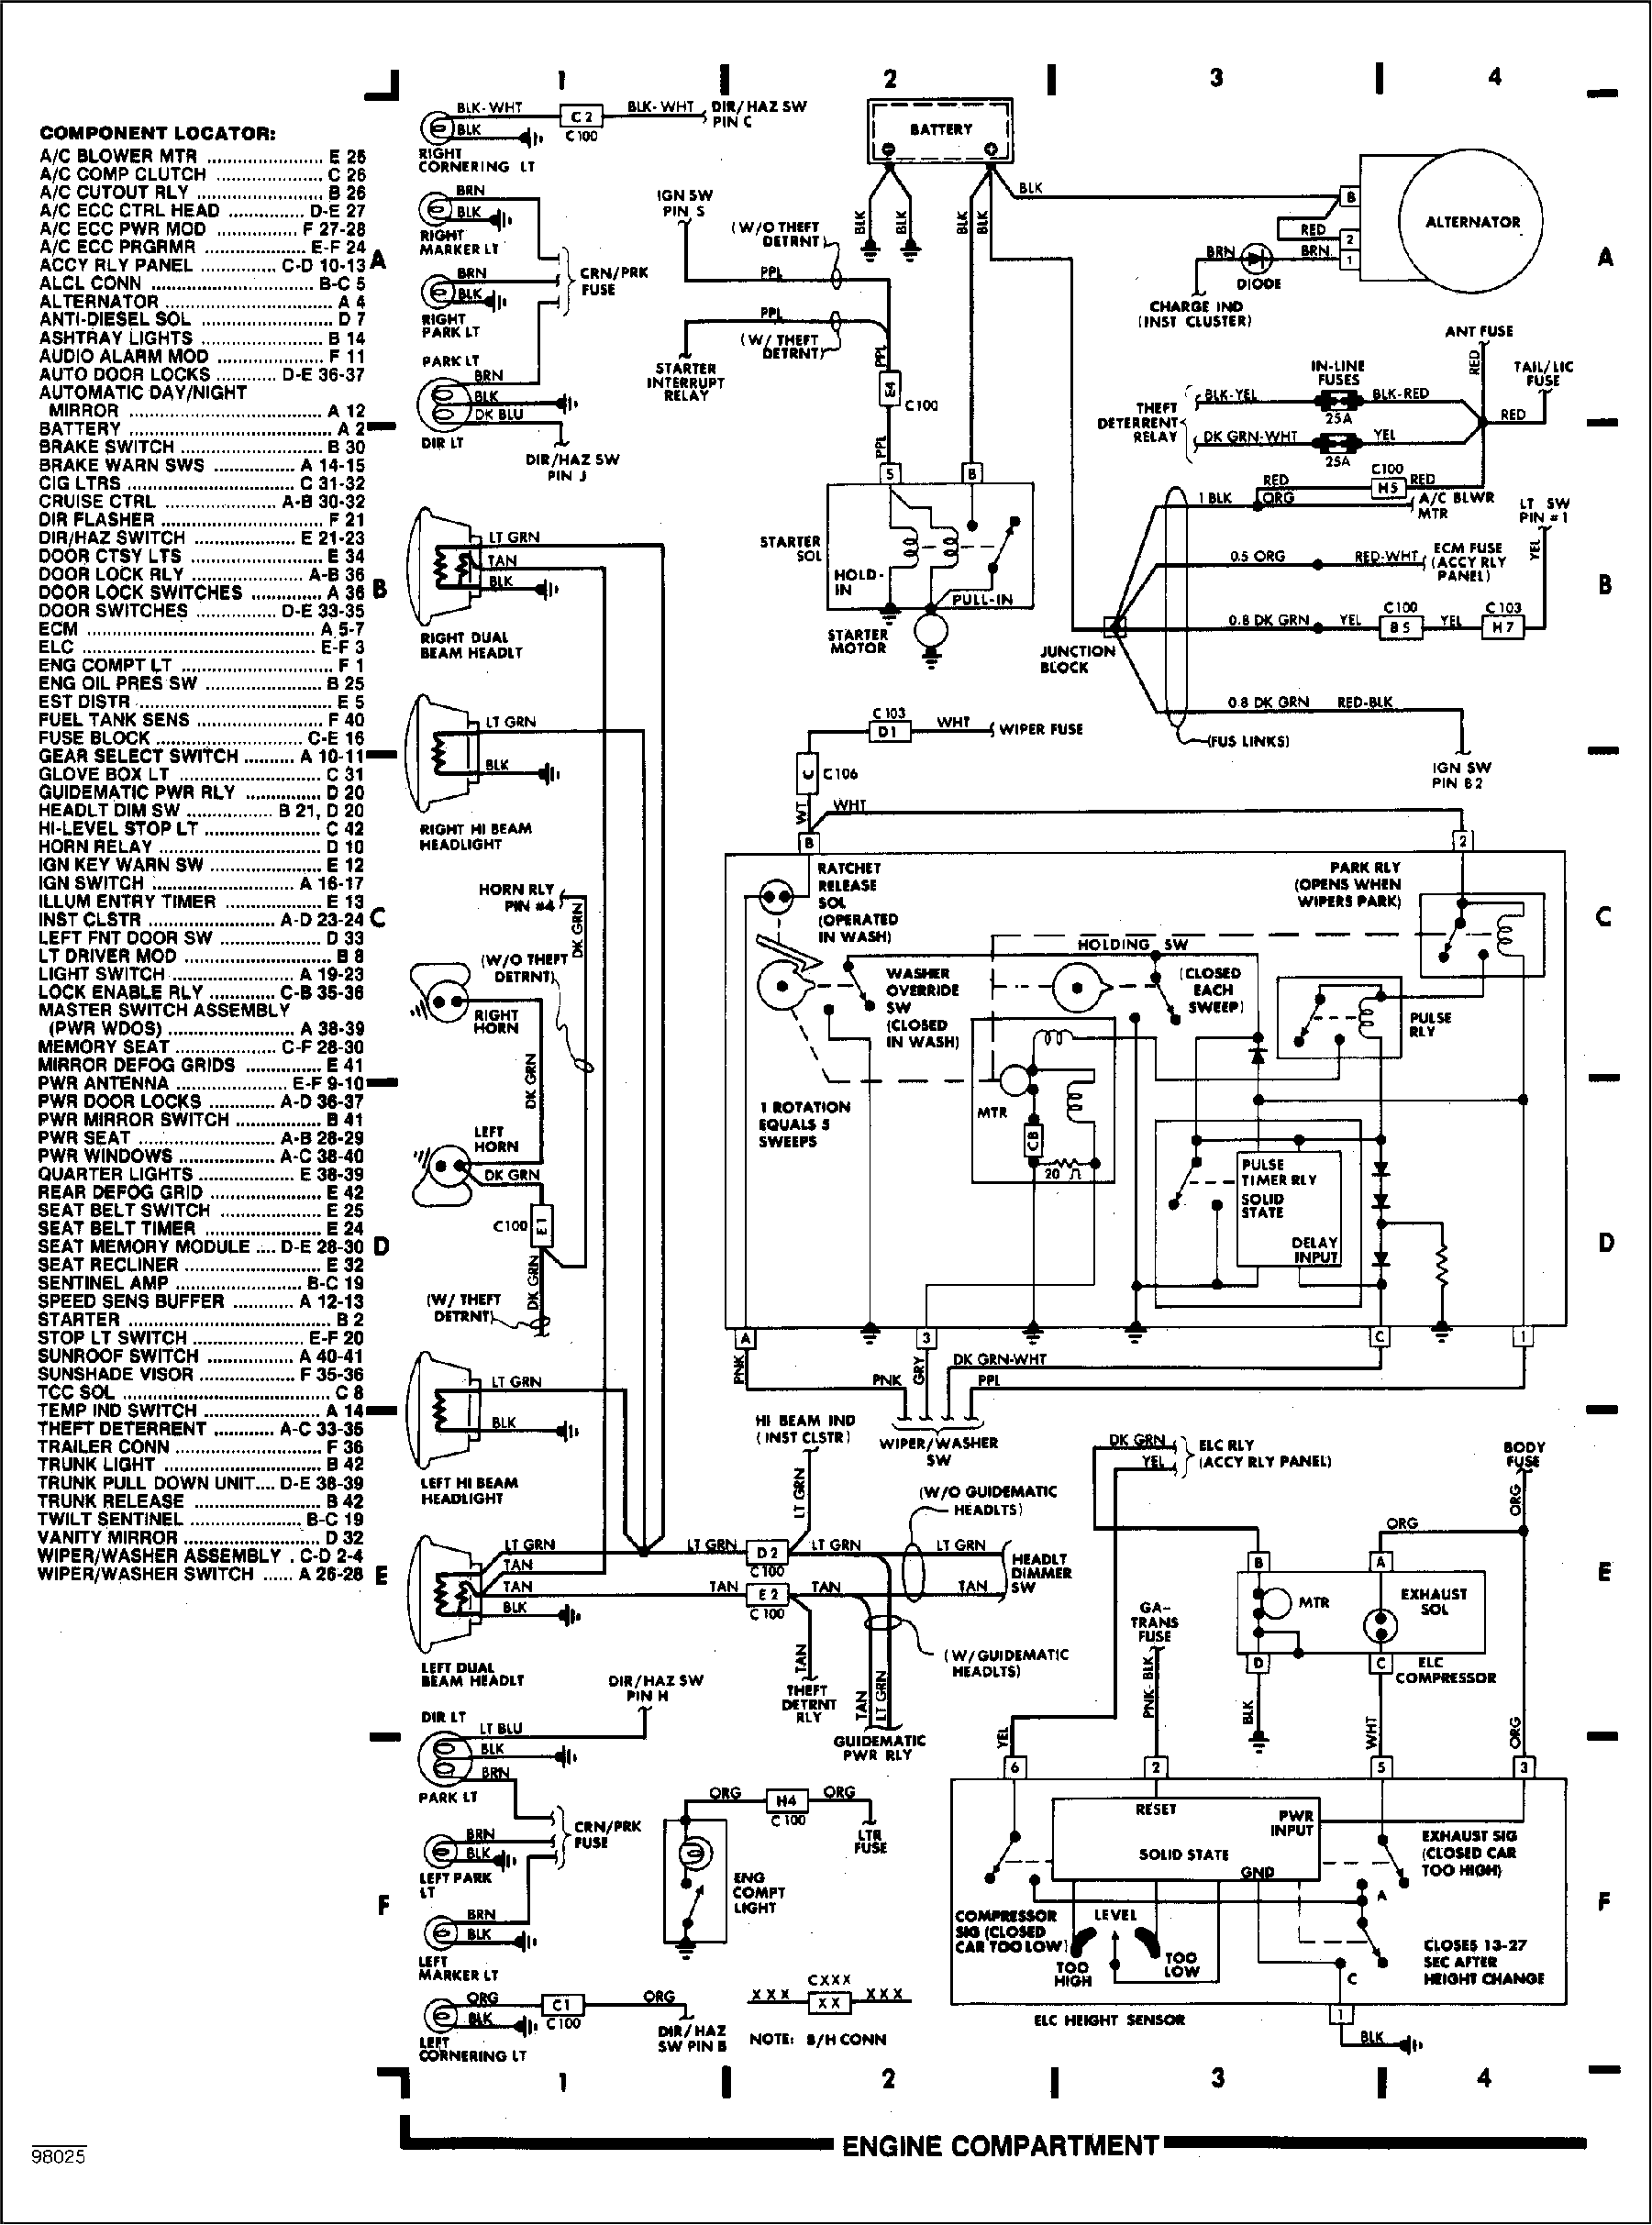 89 Cadillac Brougham Fuse Box Diagram Wiring Diagrams 1997 Sts Engine Get Free Image About 1984 Location 1999 Deville